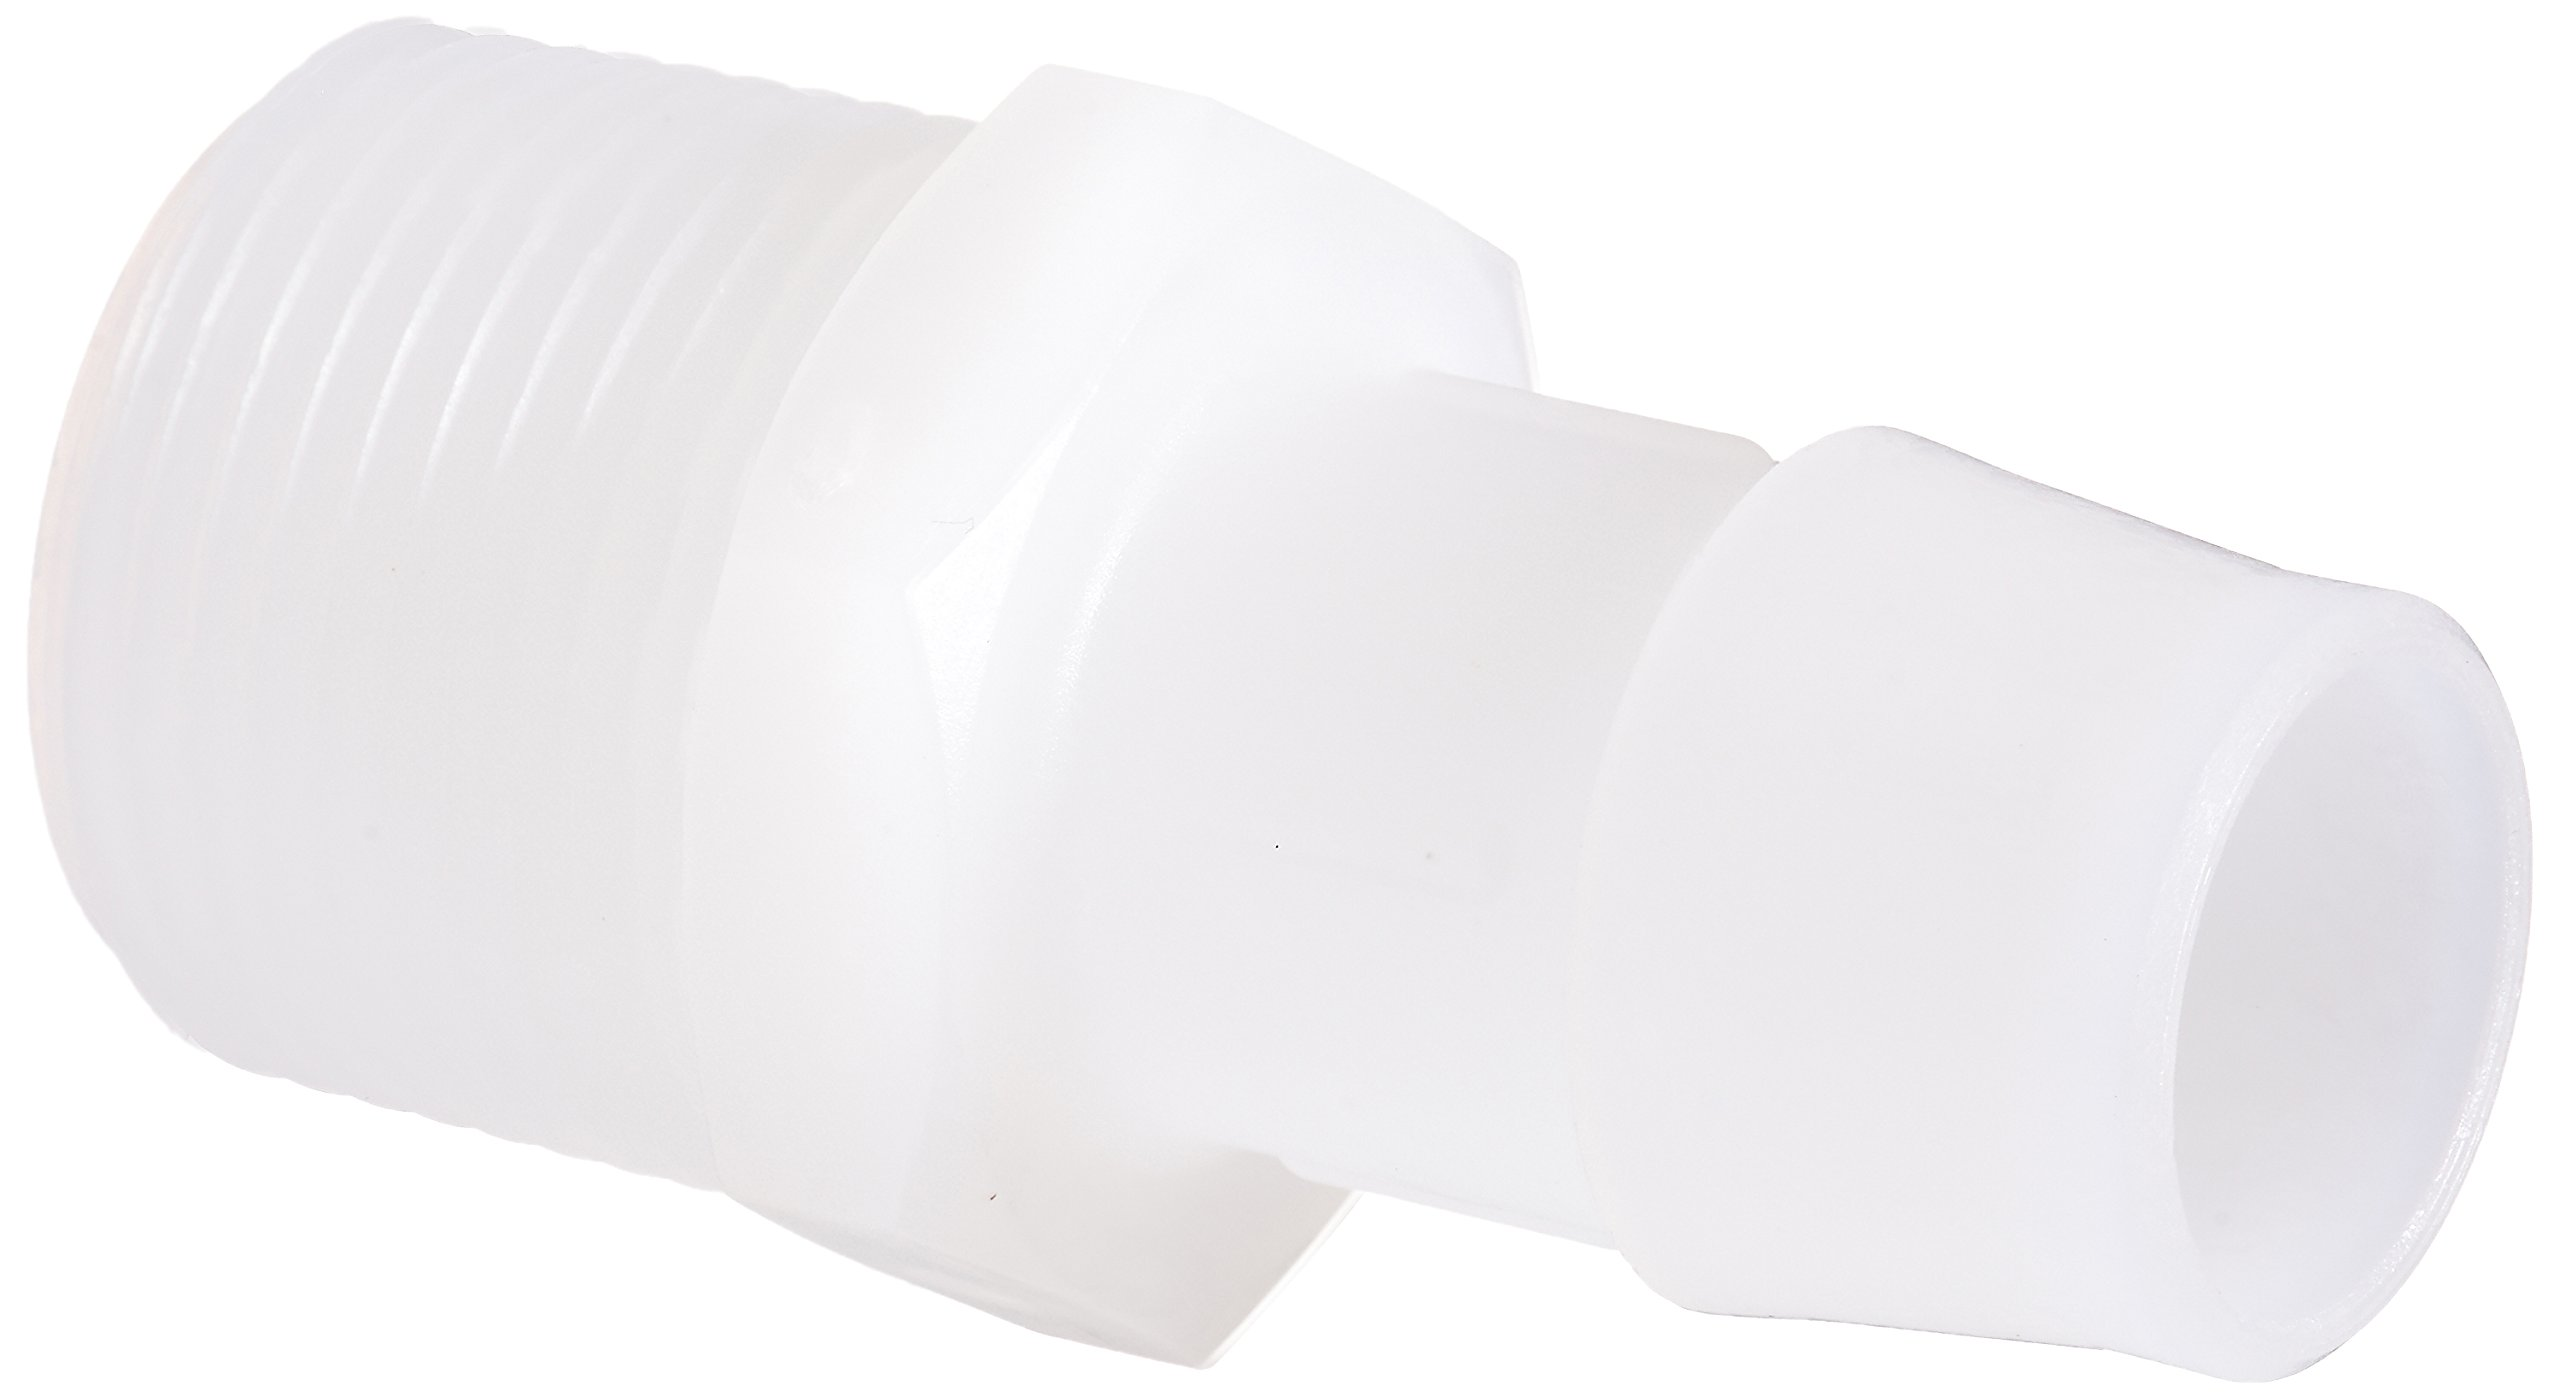 Eldon James A12-12NK Natural Kynar Adapter Fitting, 3/4-14 NPT to 3/4 Hose Barb (Pack of 10)